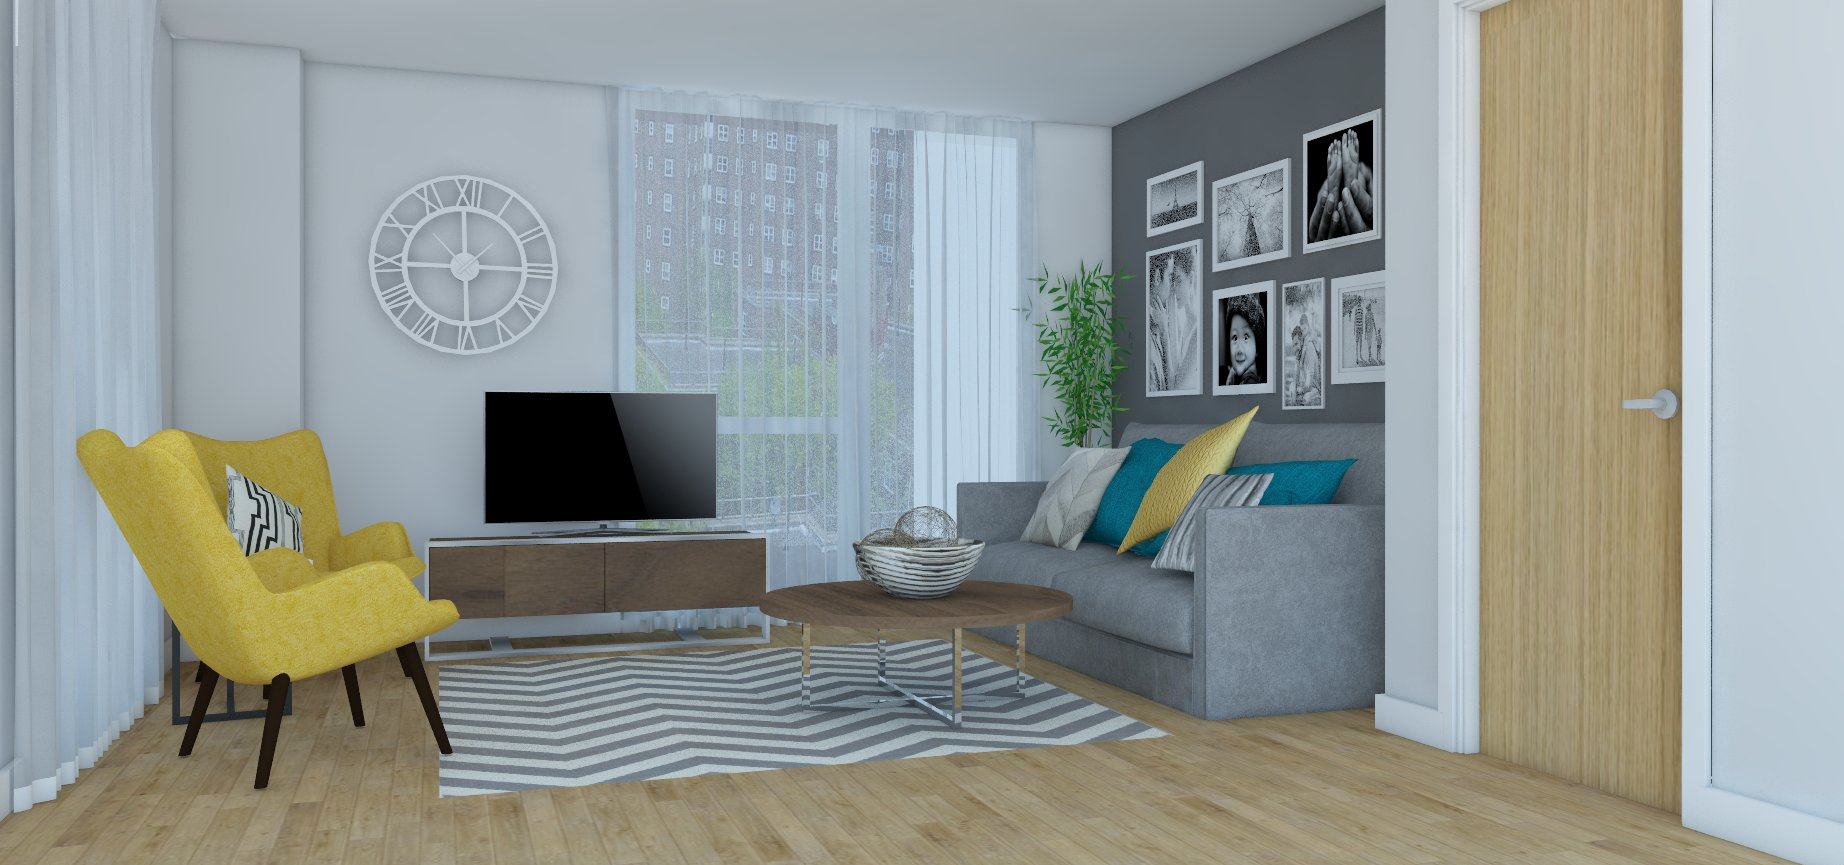 AKILIA_living room_1